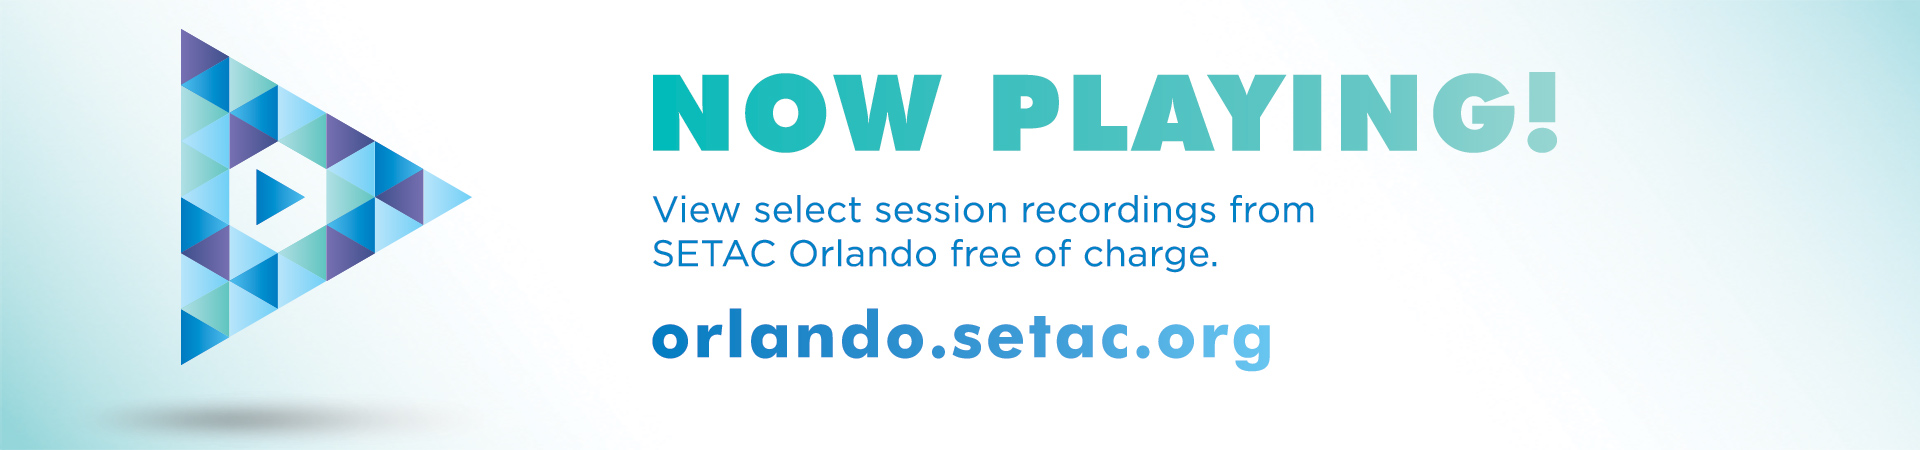 Orlando Session Recordings